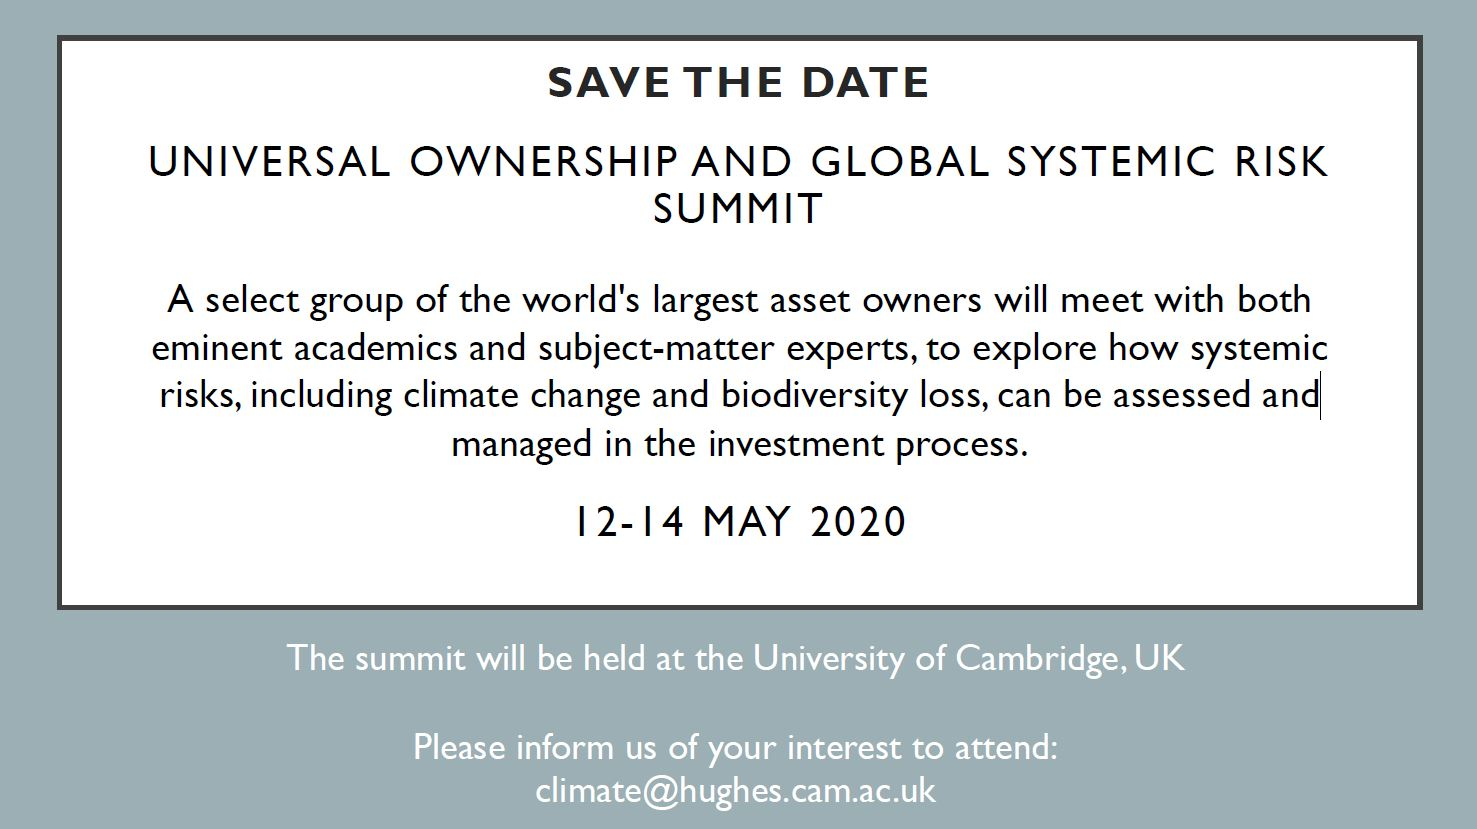 Universal Owner Summit save the date